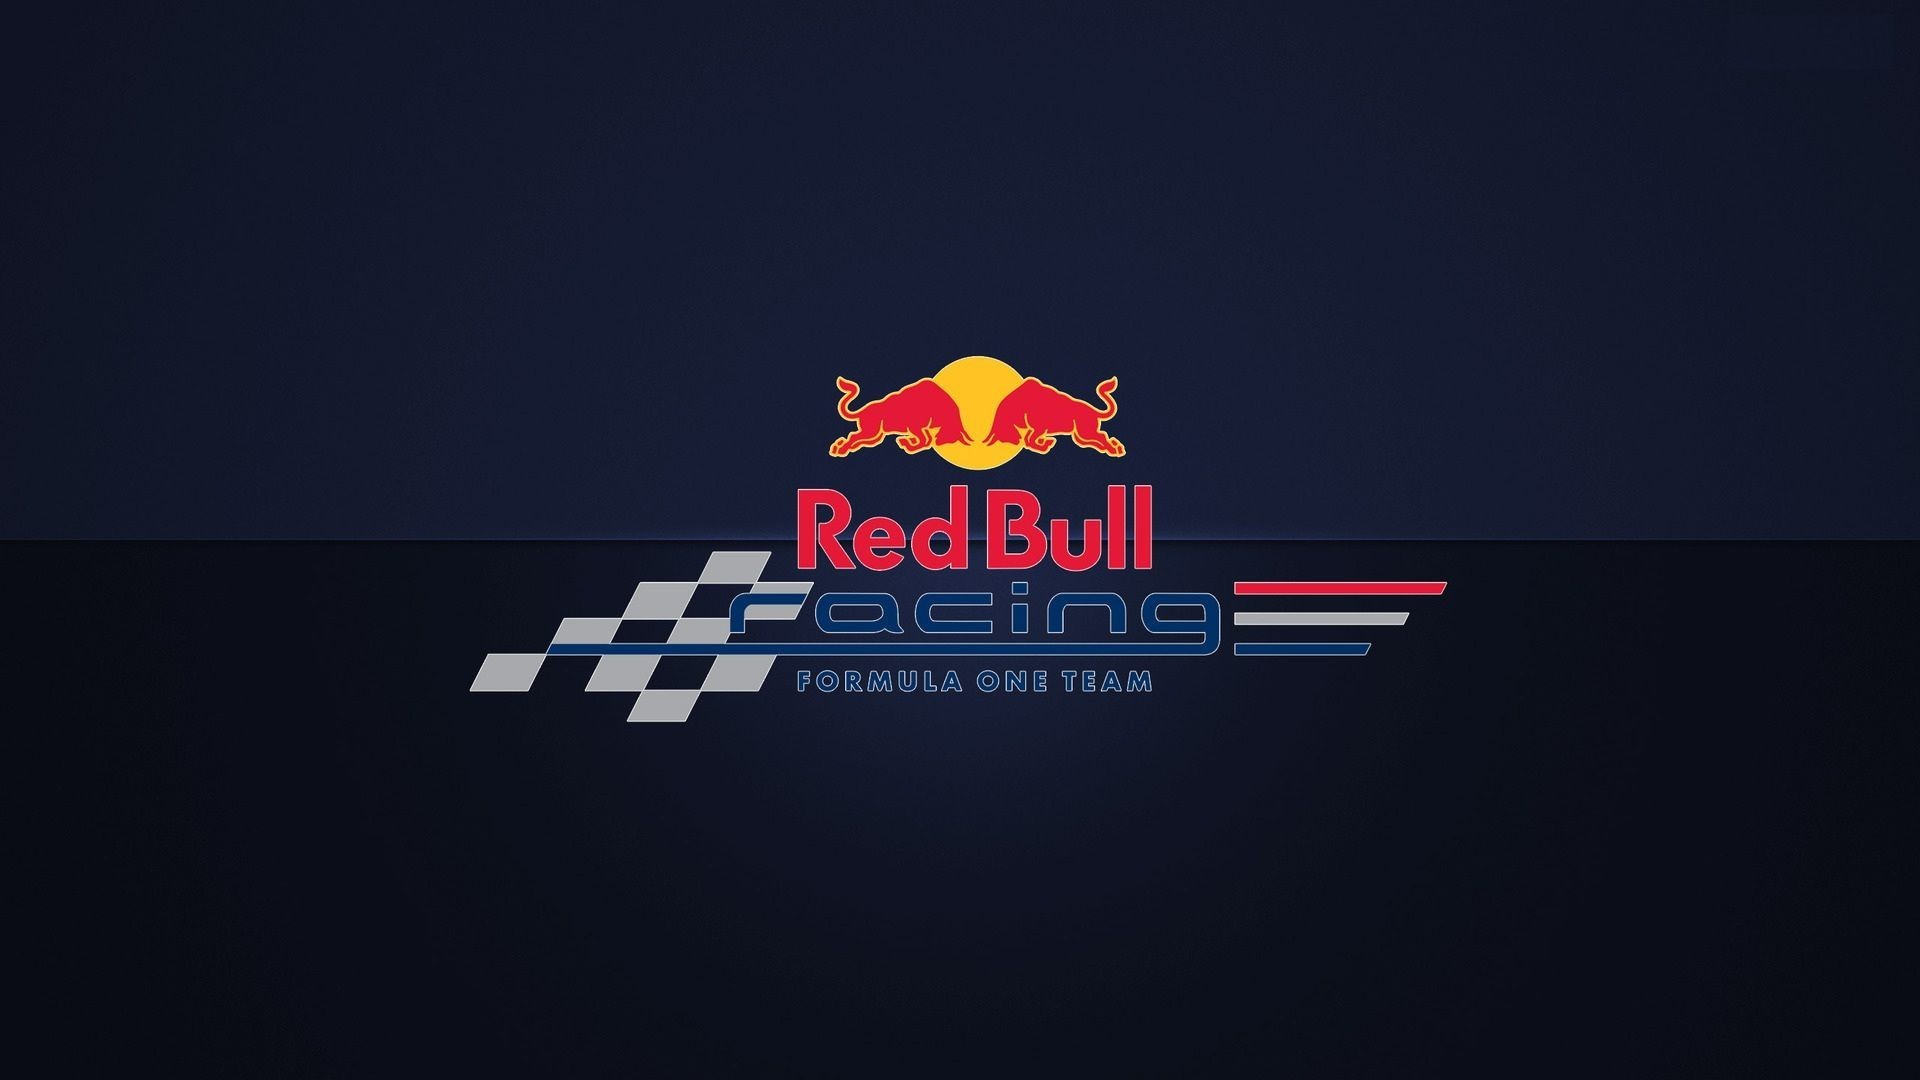 1920x1080  Red Bull Racing Formula One Logo Wallpapers | HD Wallpapers .